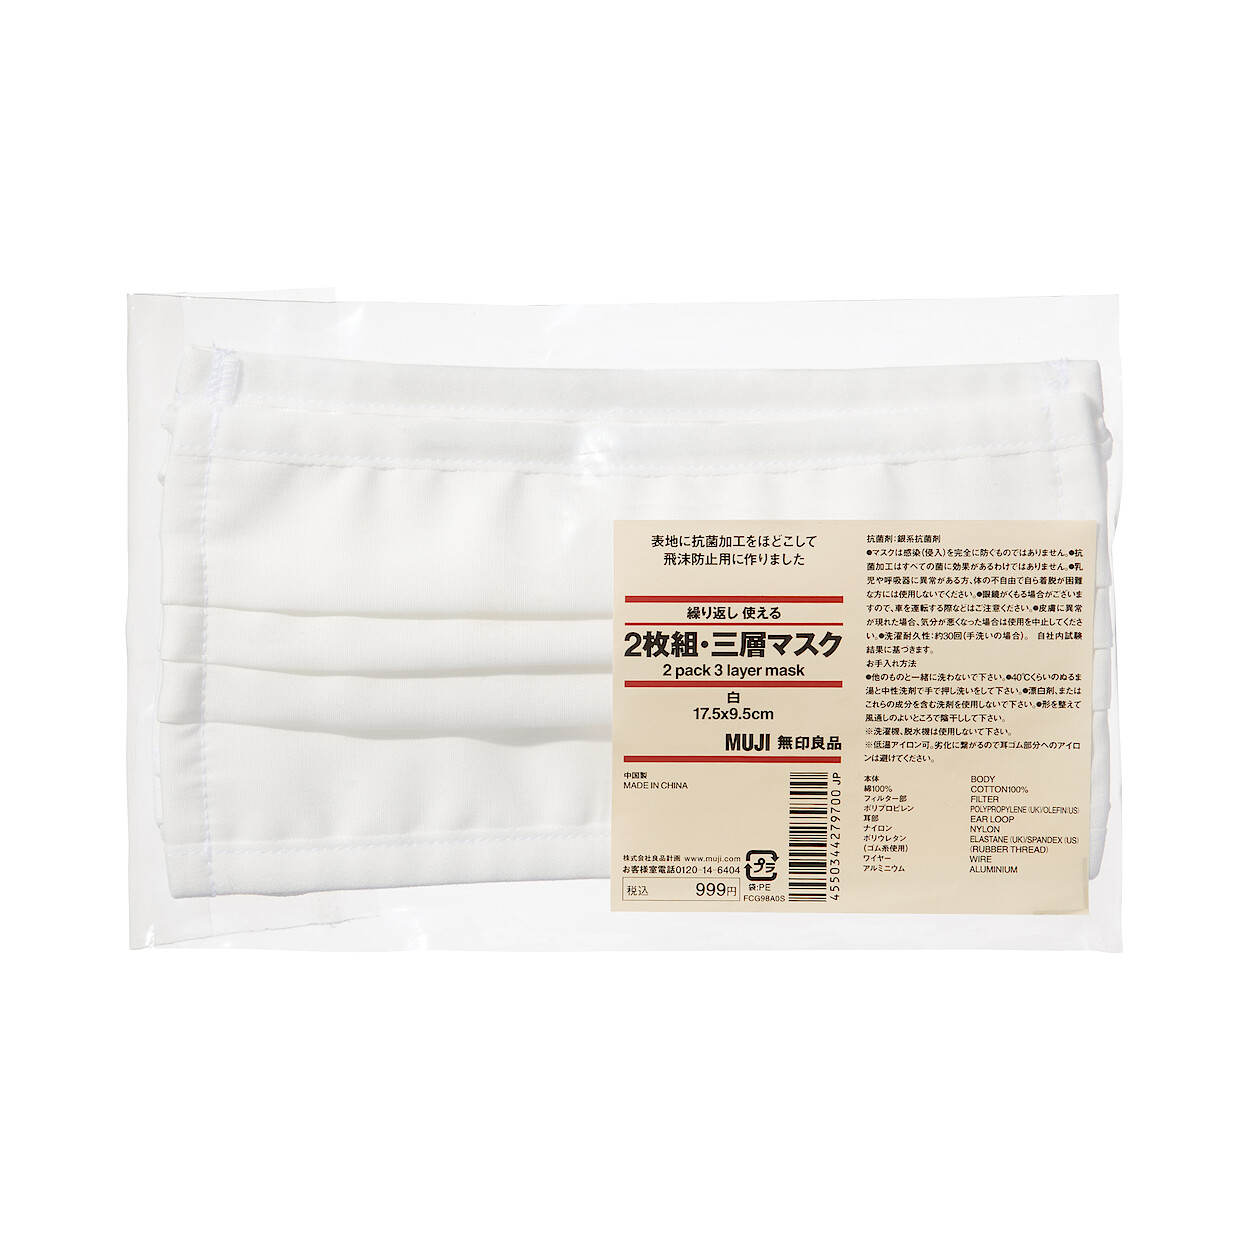 2 Pack 3Layer Mask